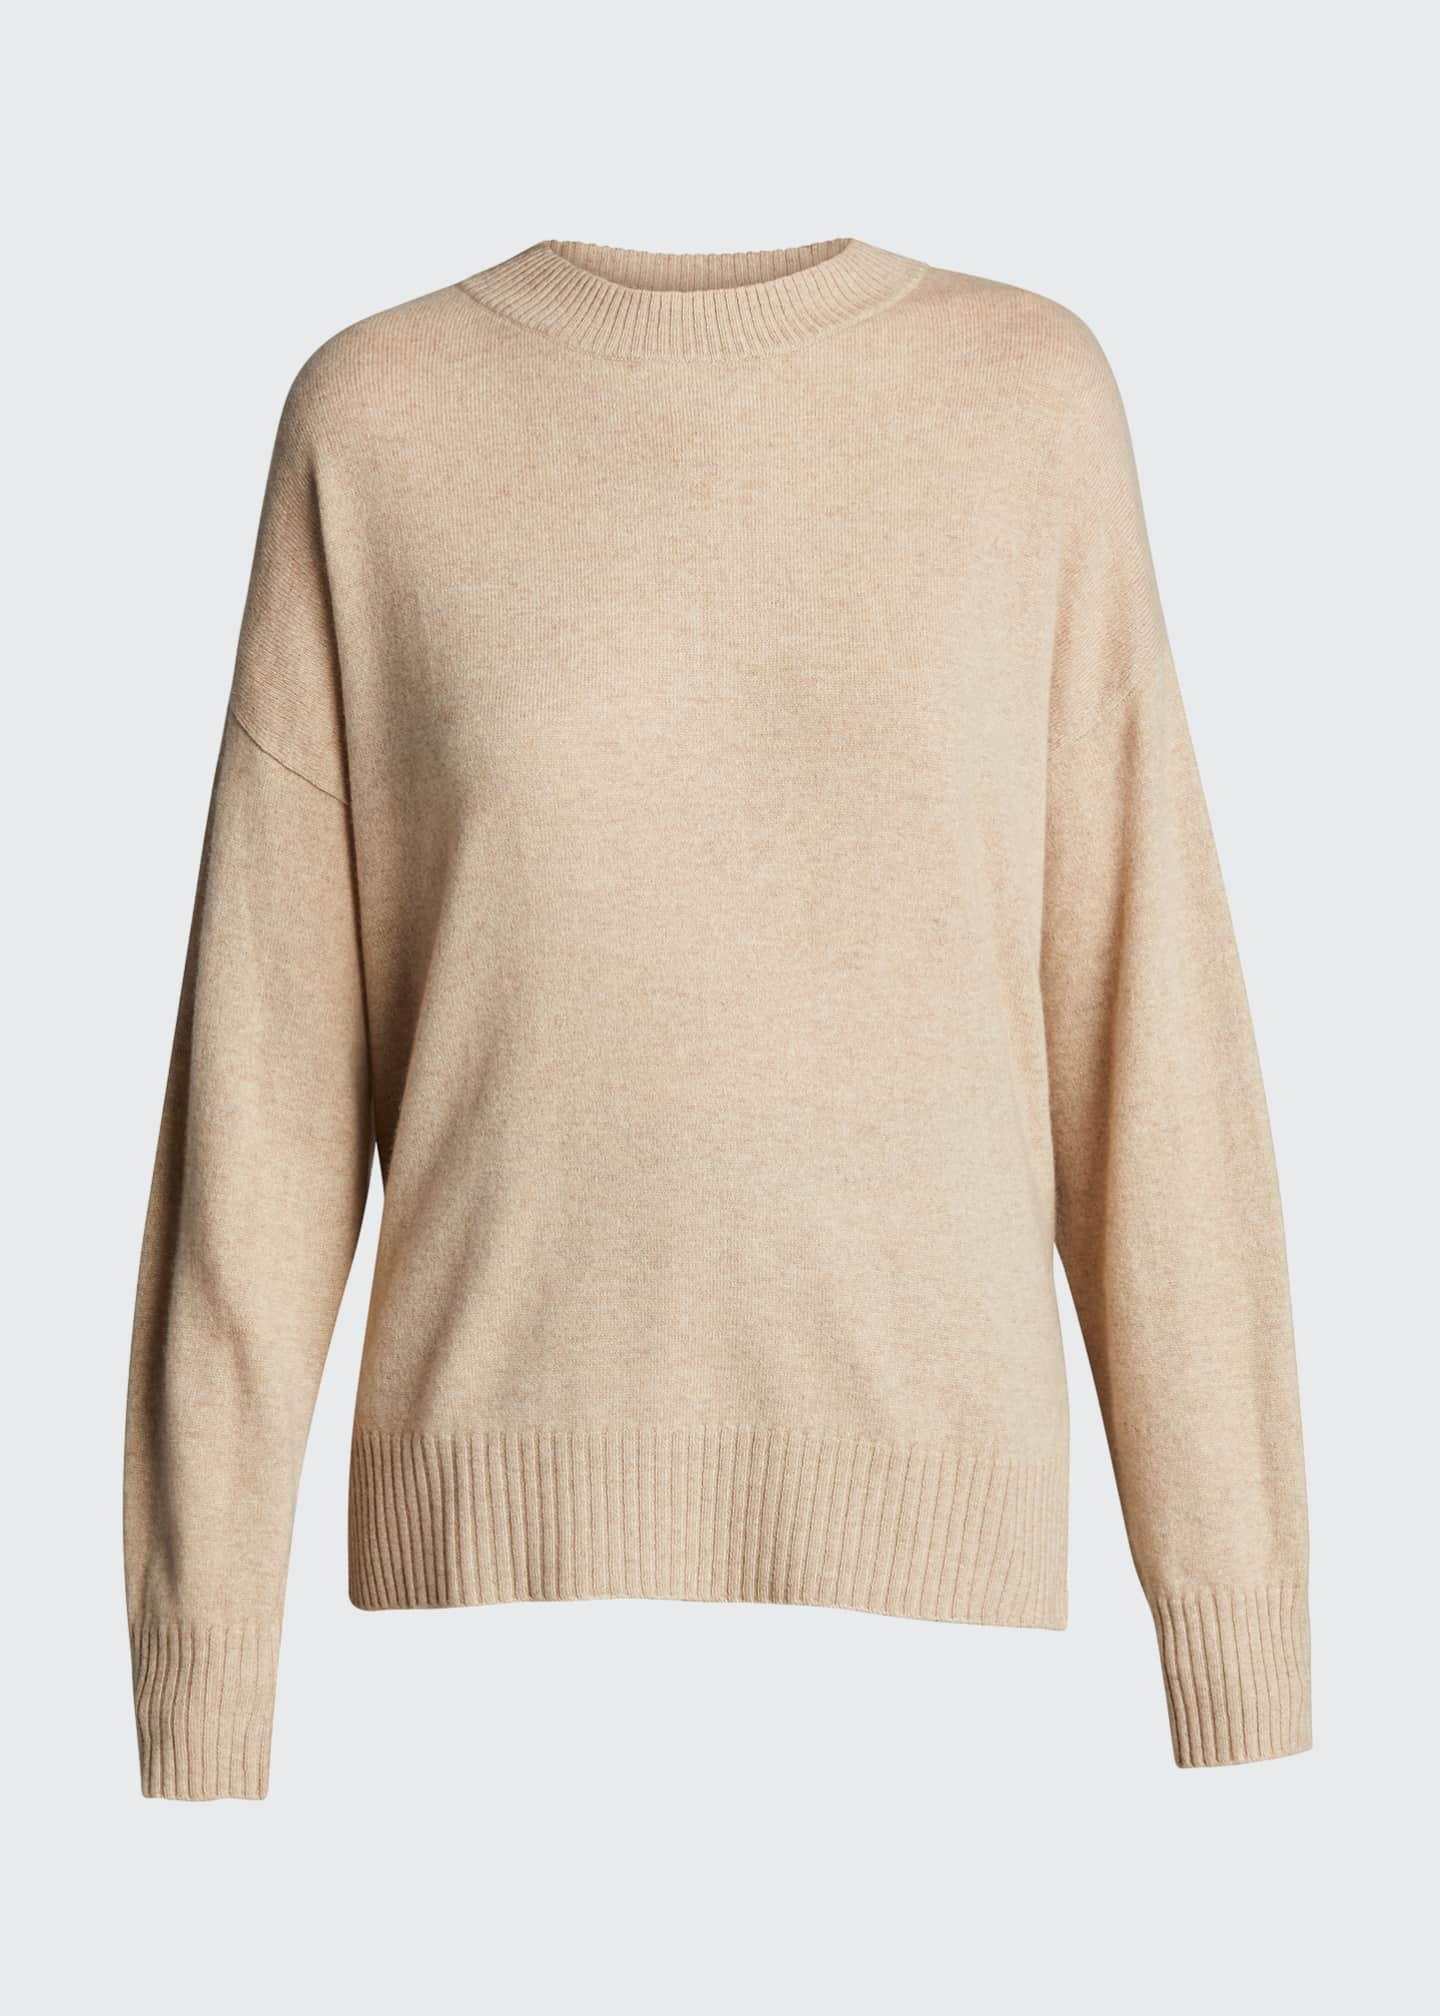 Image 5 of 5: Cashmere Crewneck Sweater